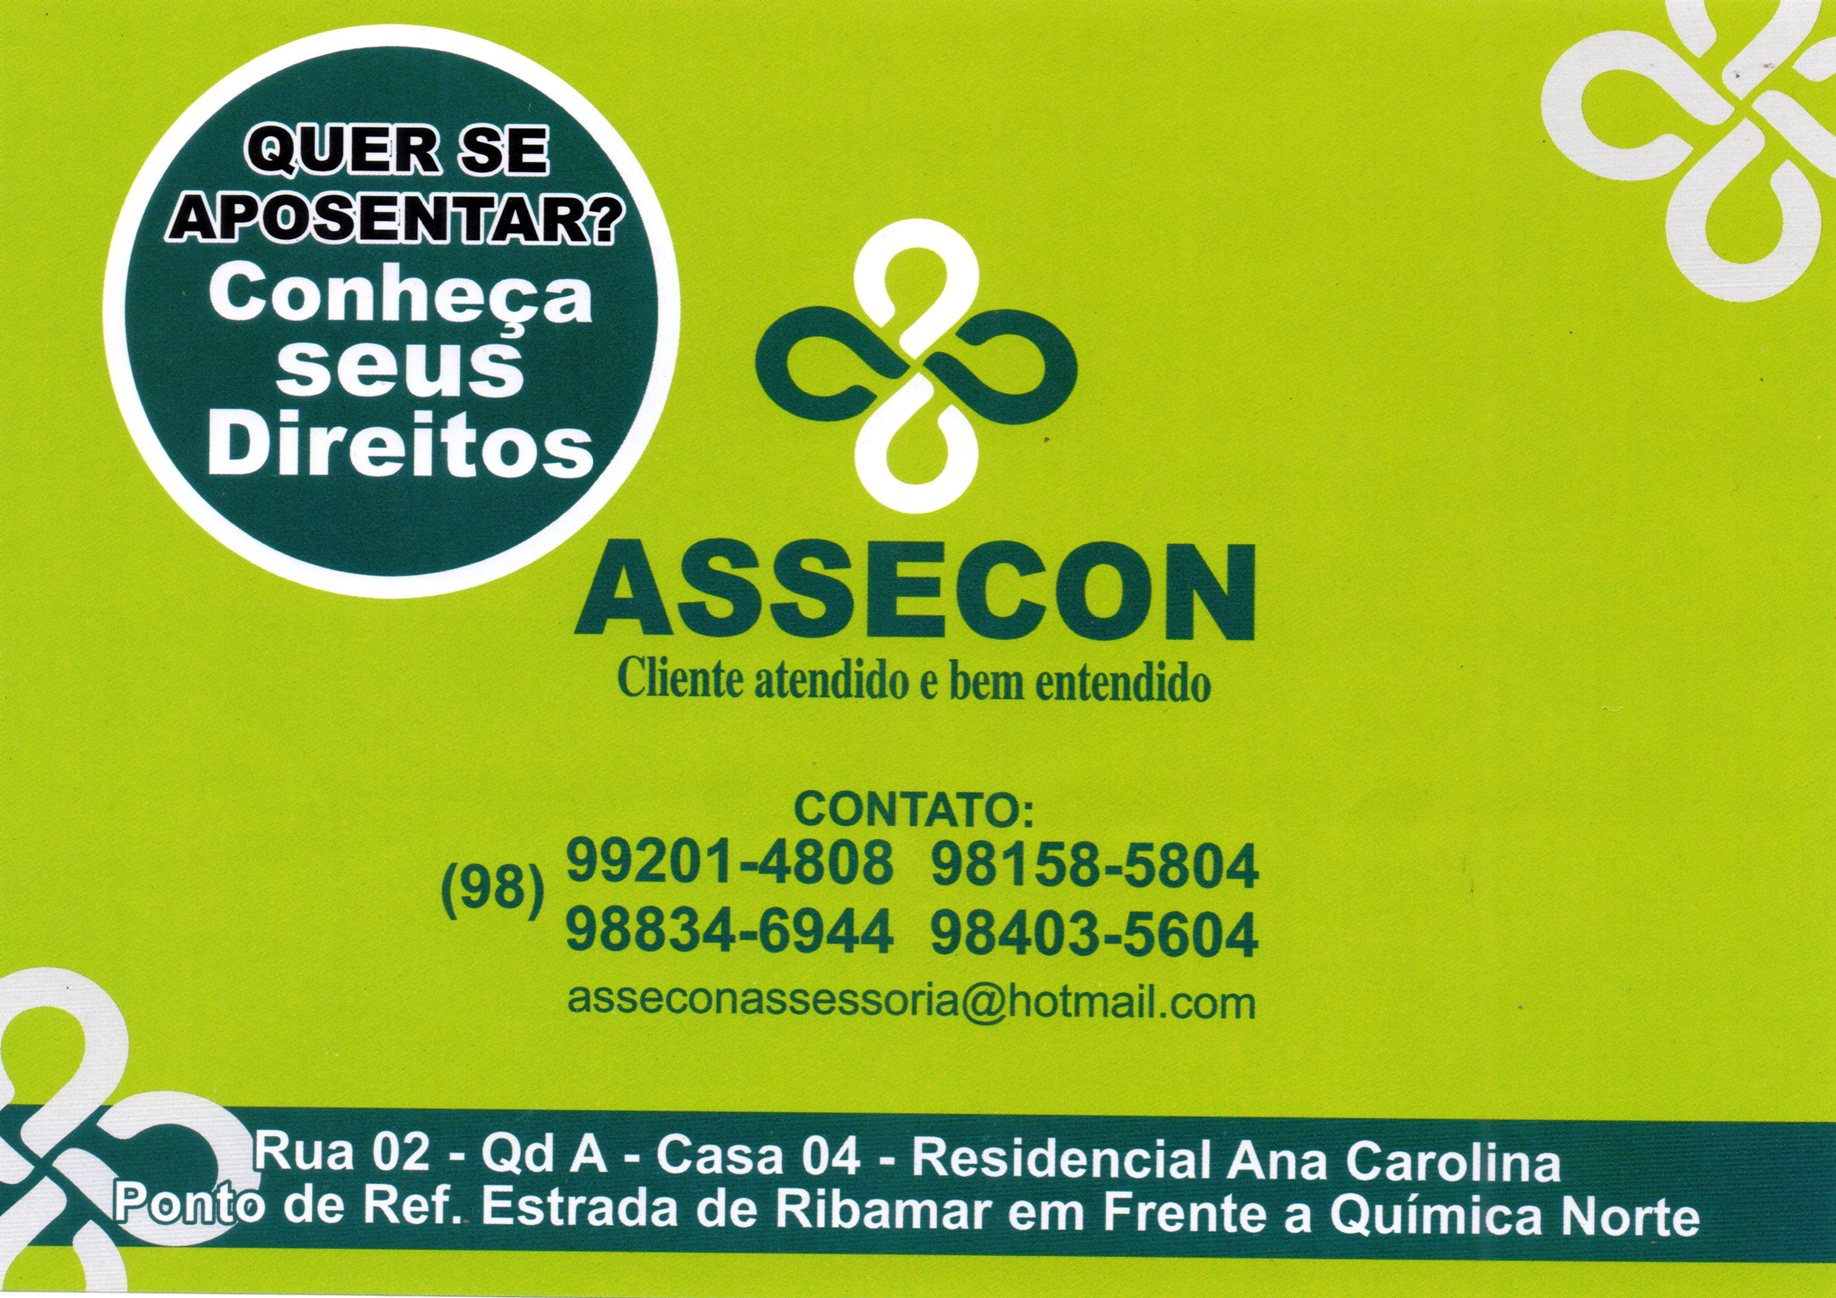 ASSECON